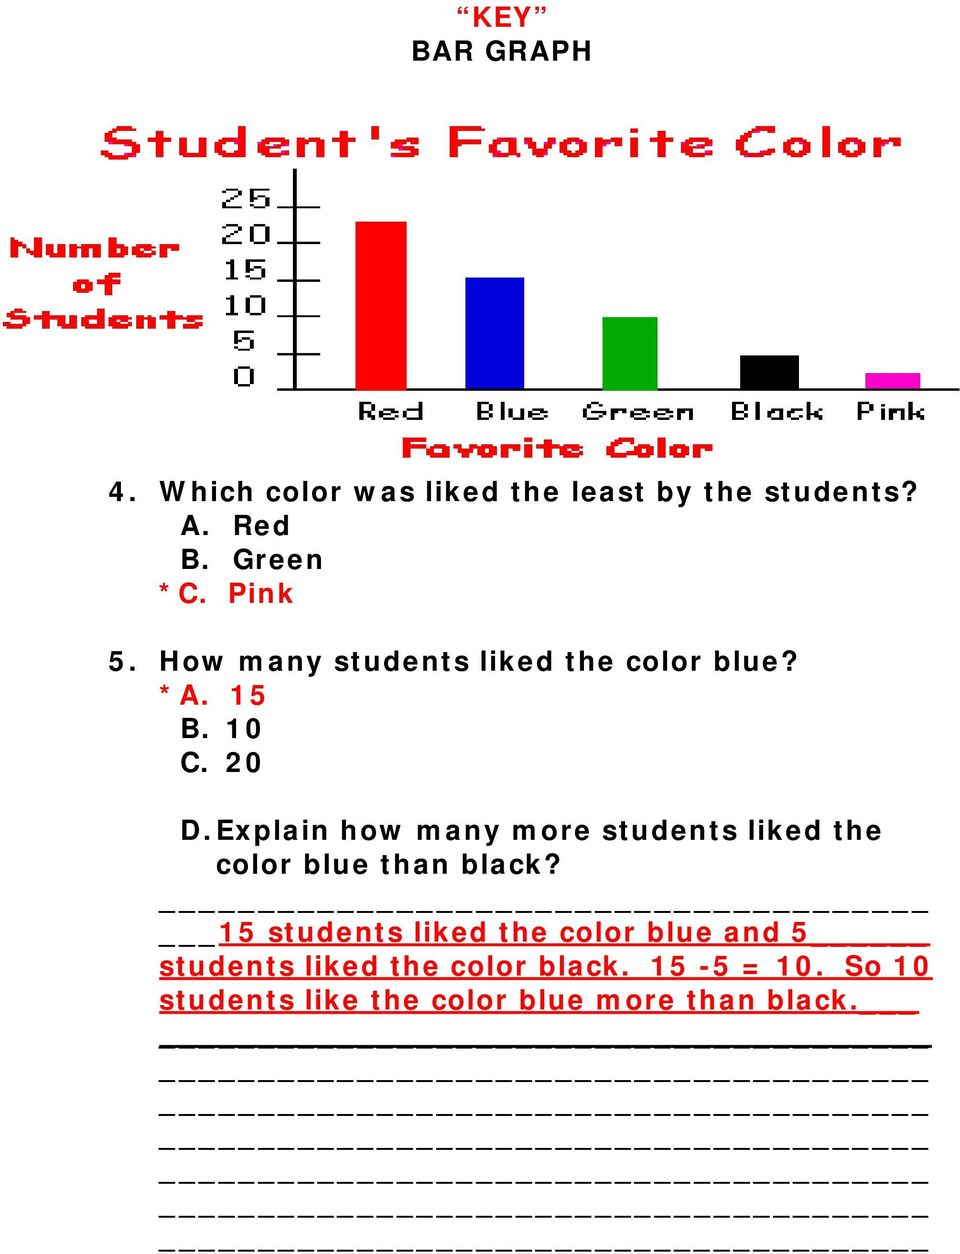 Explain how many more students liked the color blue than black?